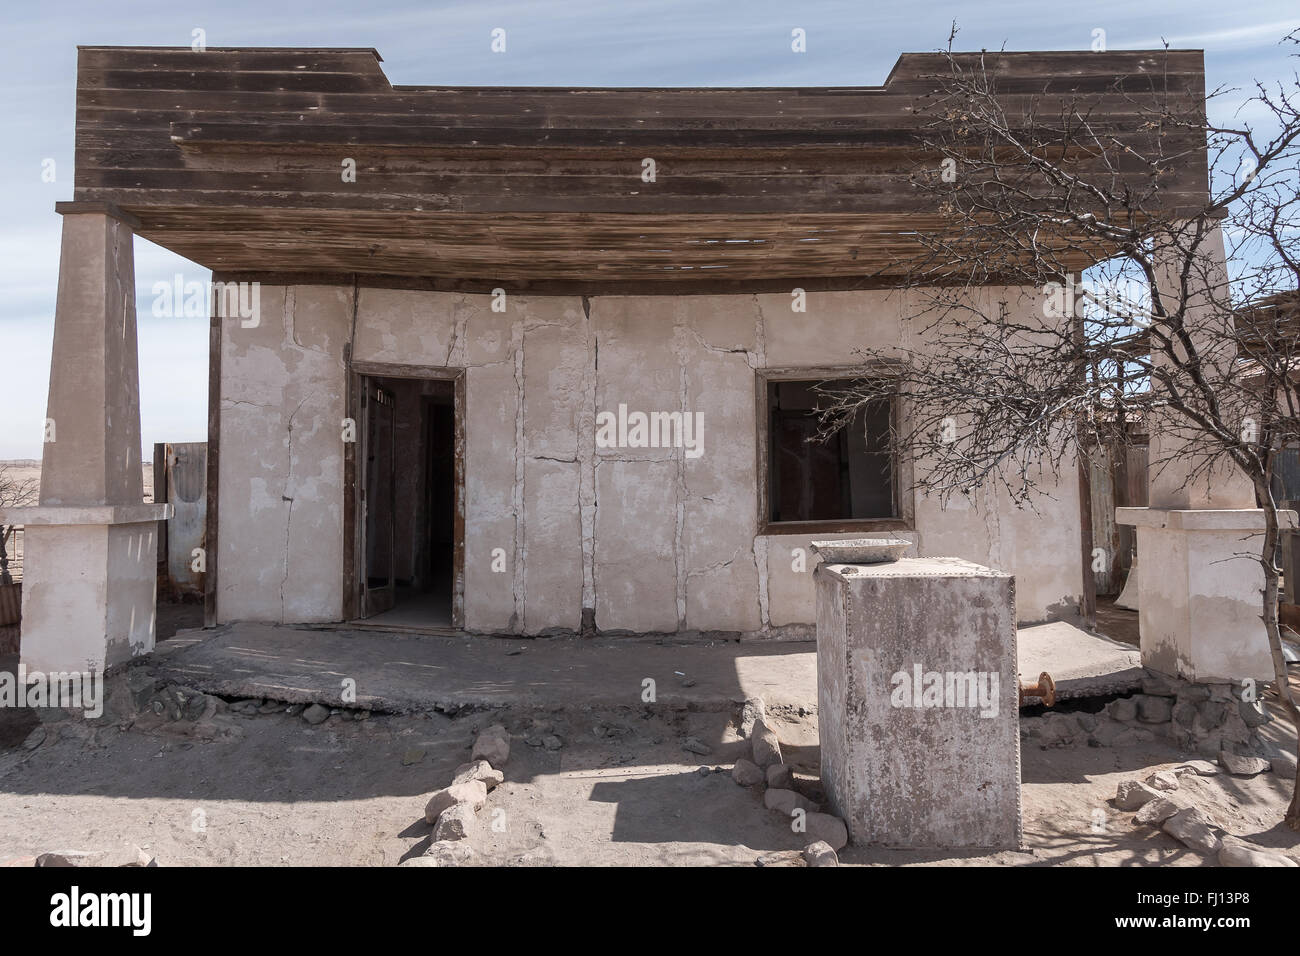 Former supervisors' houses in Humberstone, a former nitrate mining and processing town in the Atacama desert. - Stock Image